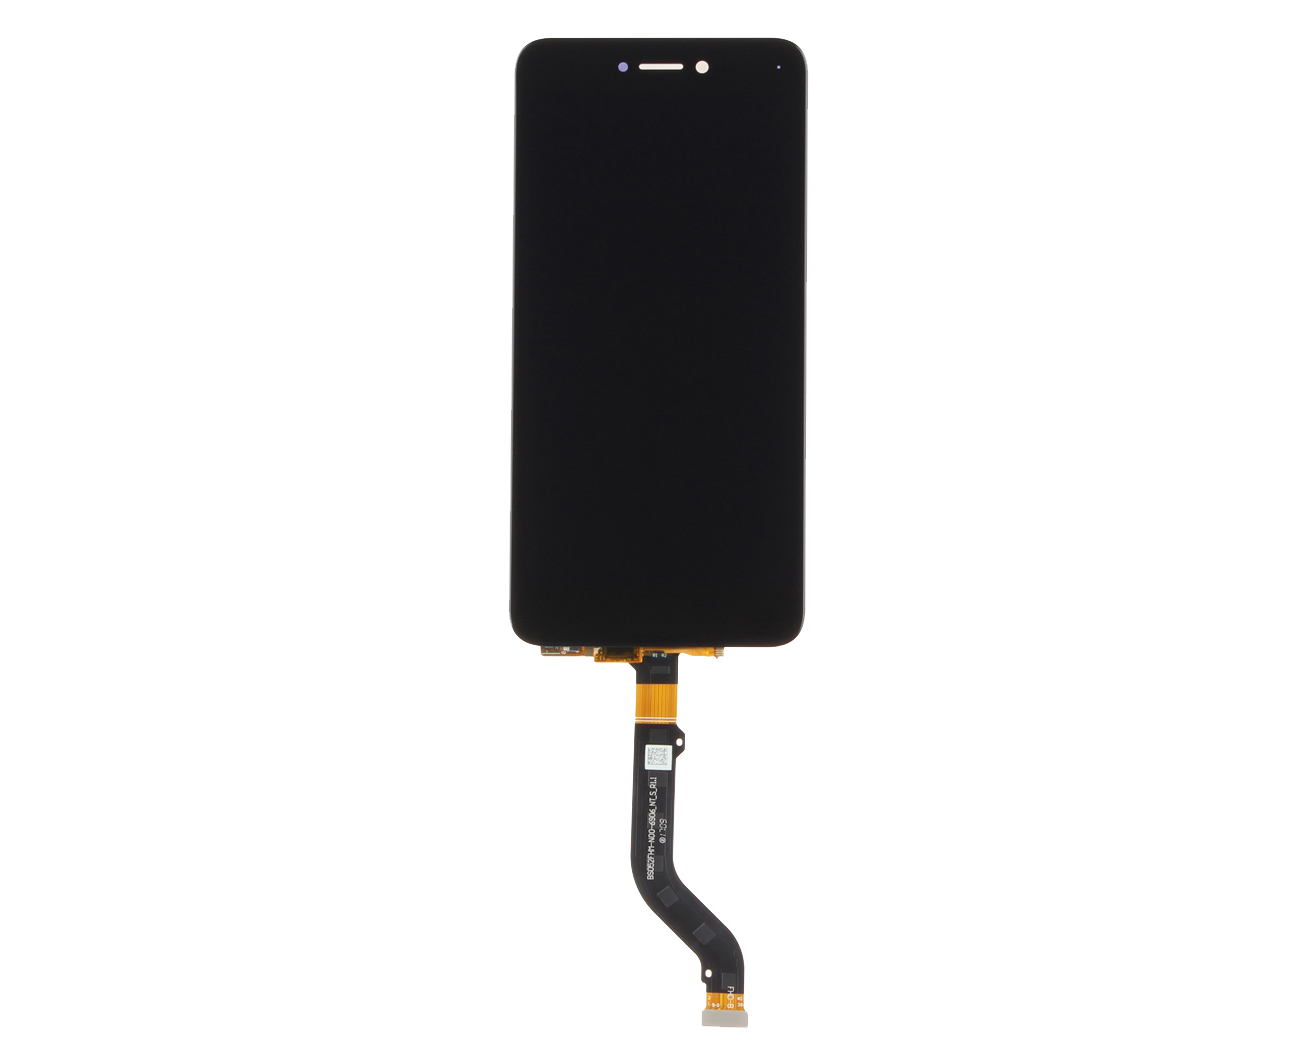 2017 Black LCD Screen Mobile Phone and Digitizer Full Assembly with Frame for Huawei P8 Lite Color : Black